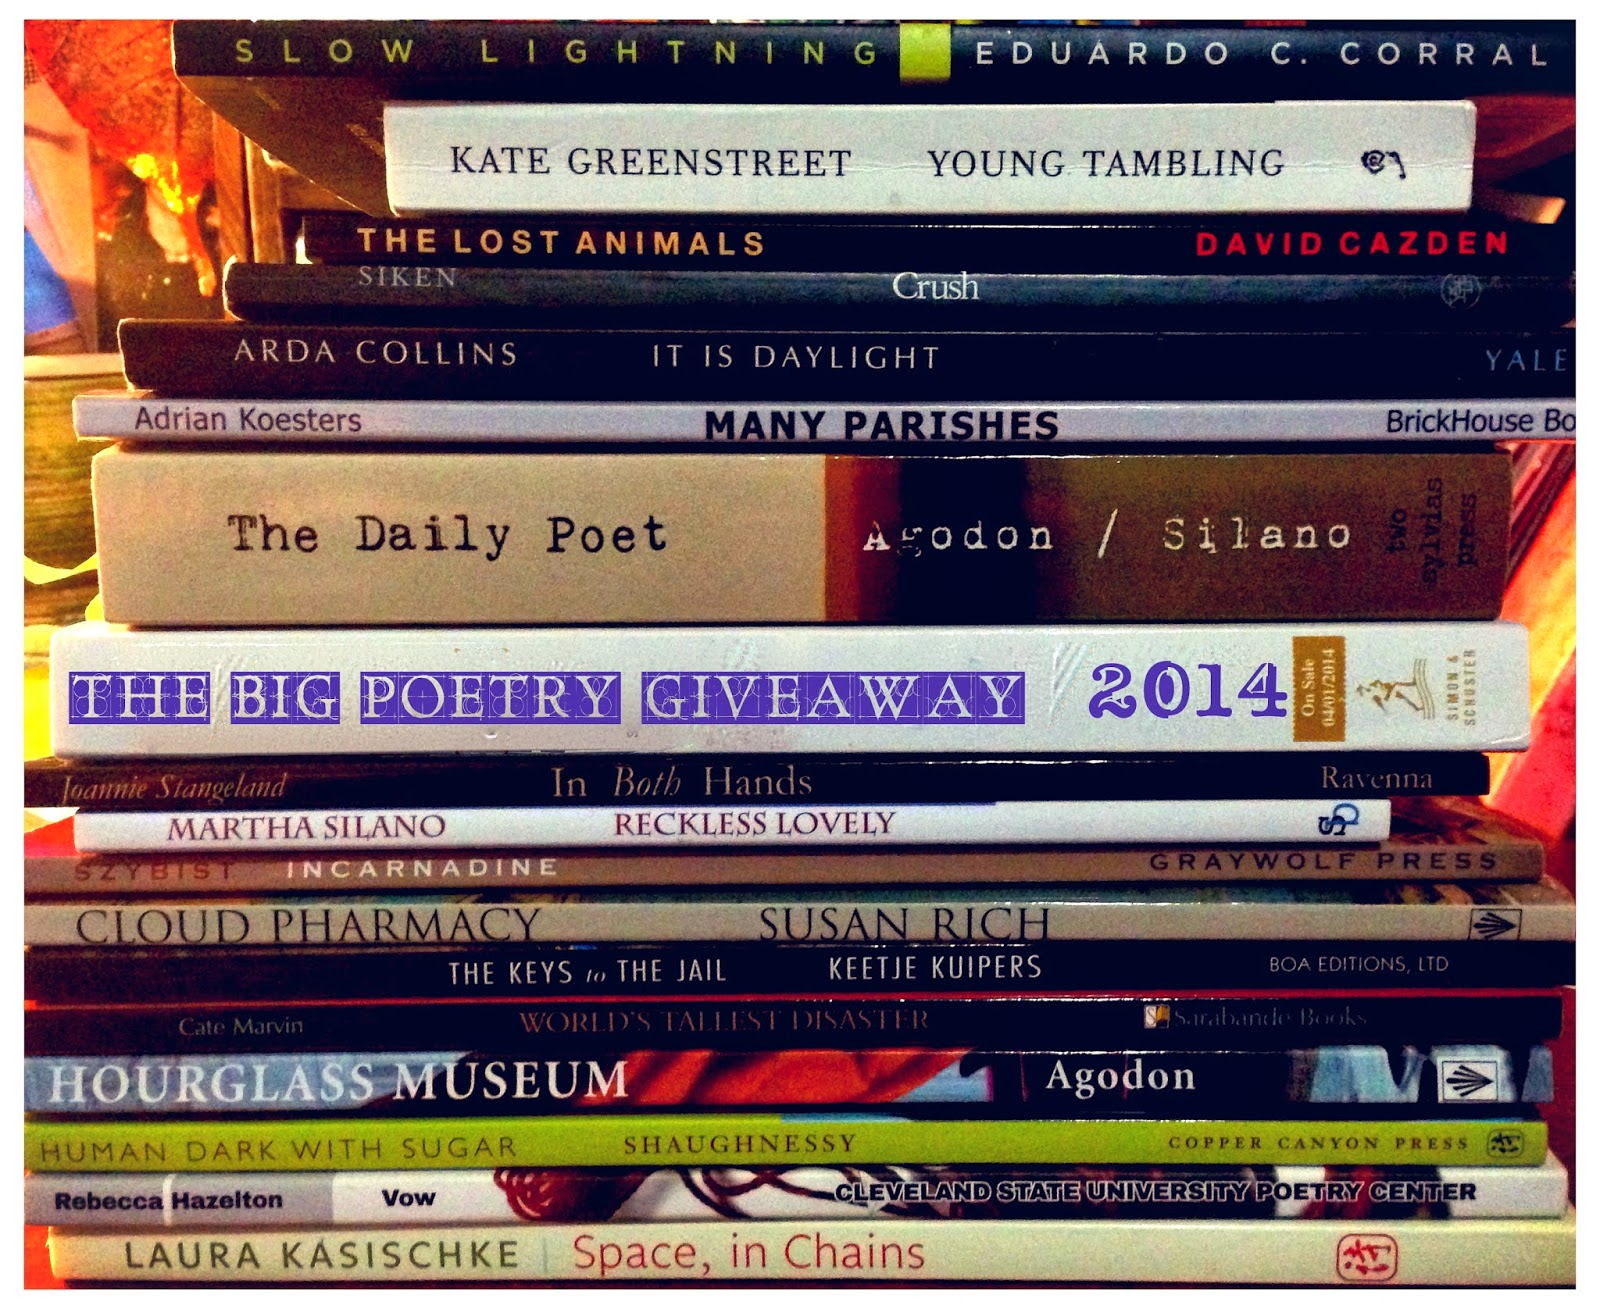 THE BIG POETRY GIVEAWAY 2014